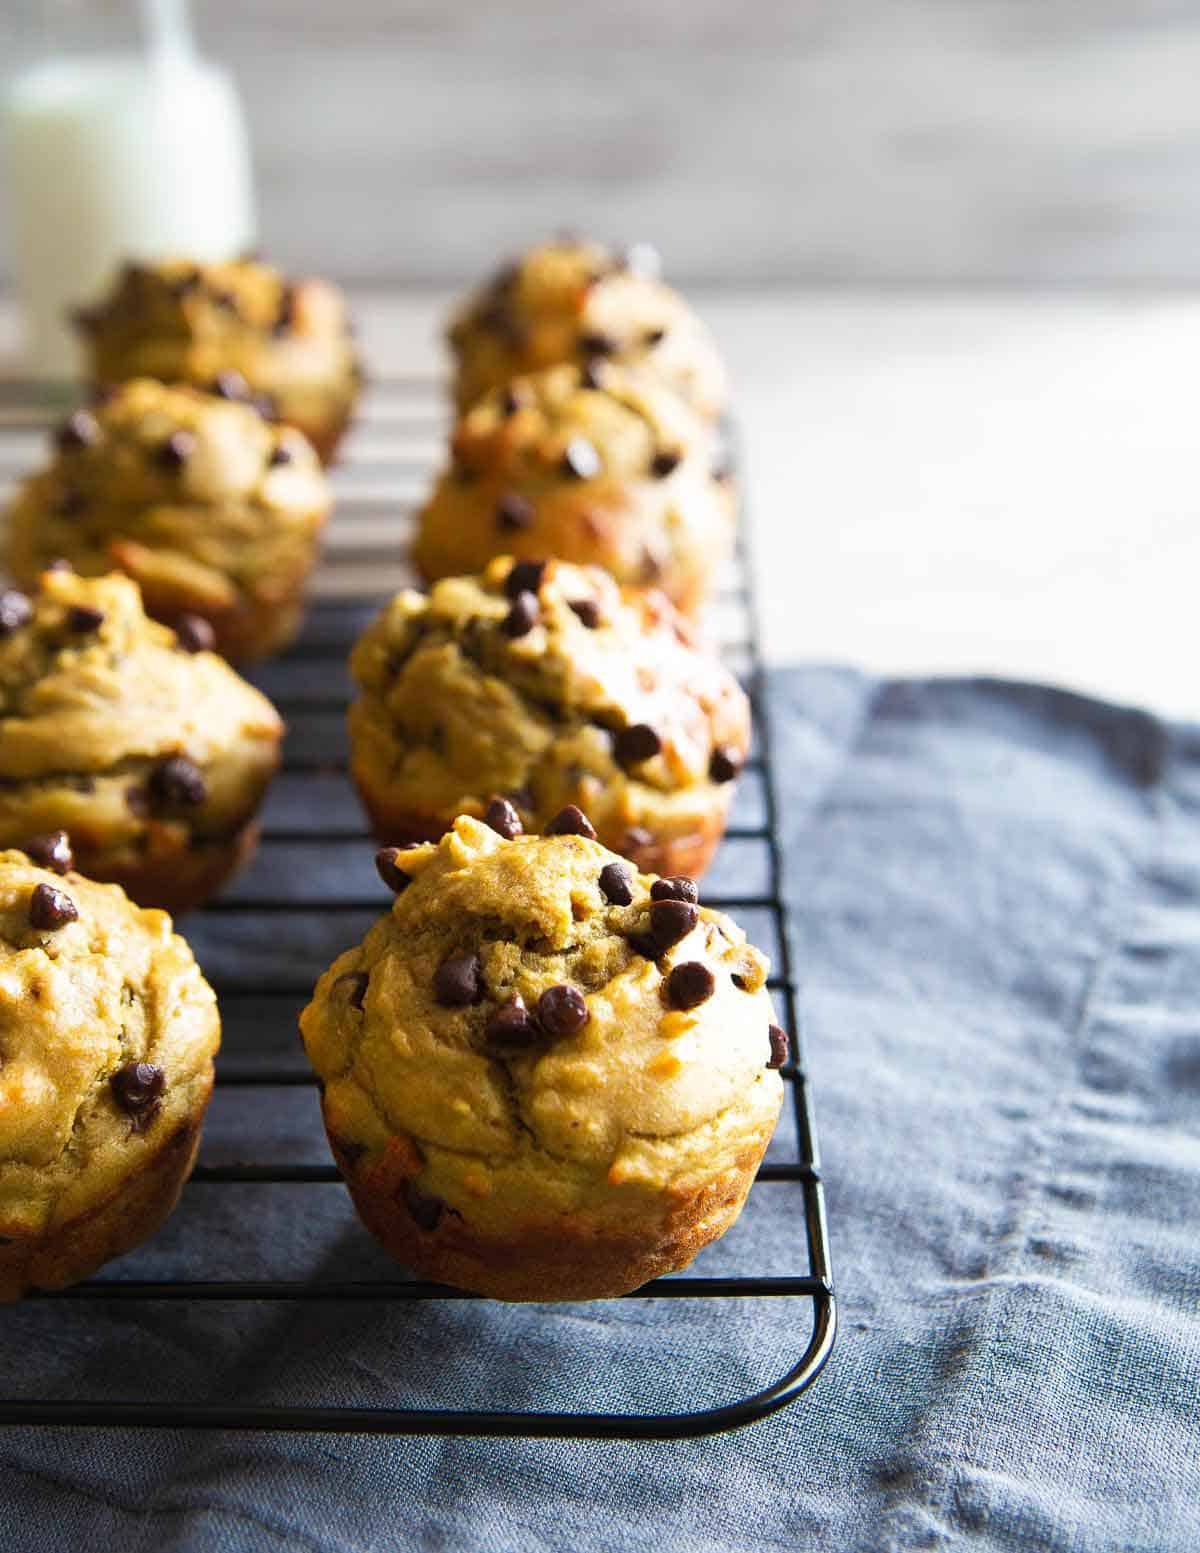 These avocado muffins are packed with healthy fats, made with whole wheat flour and studded with chocolate chips for a fun and satisfying snack.